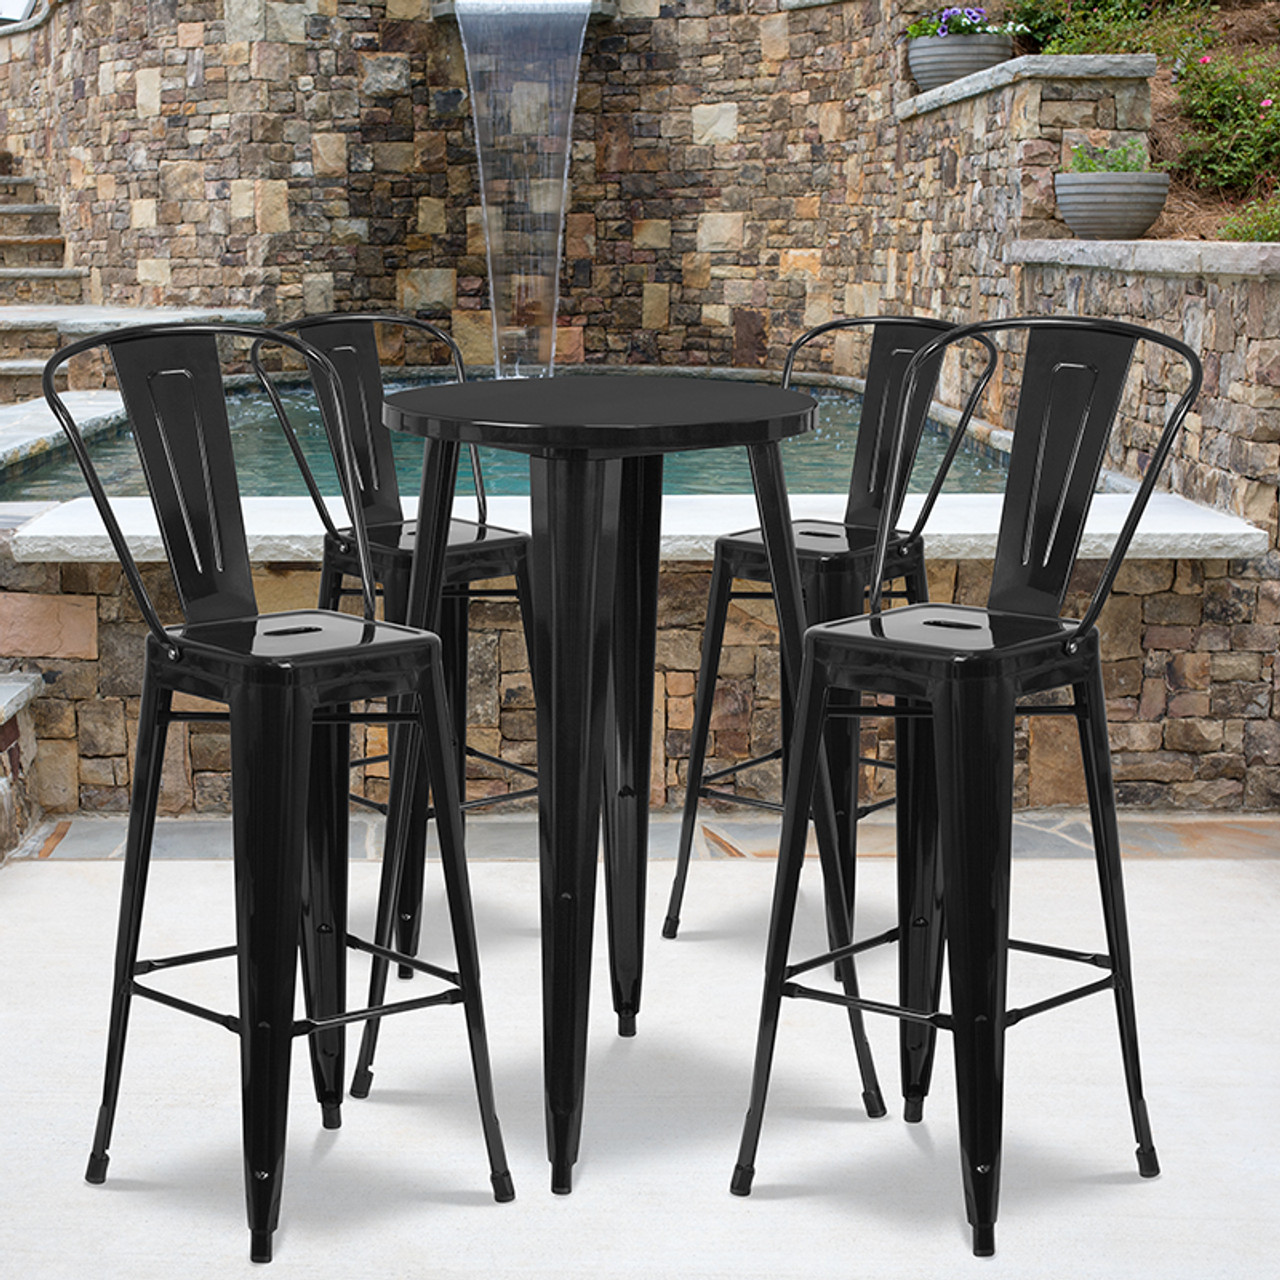 Fabulous 24 Round Black Metal Indoor Outdoor Bar Table Set With 4 Cafe Stools Forskolin Free Trial Chair Design Images Forskolin Free Trialorg